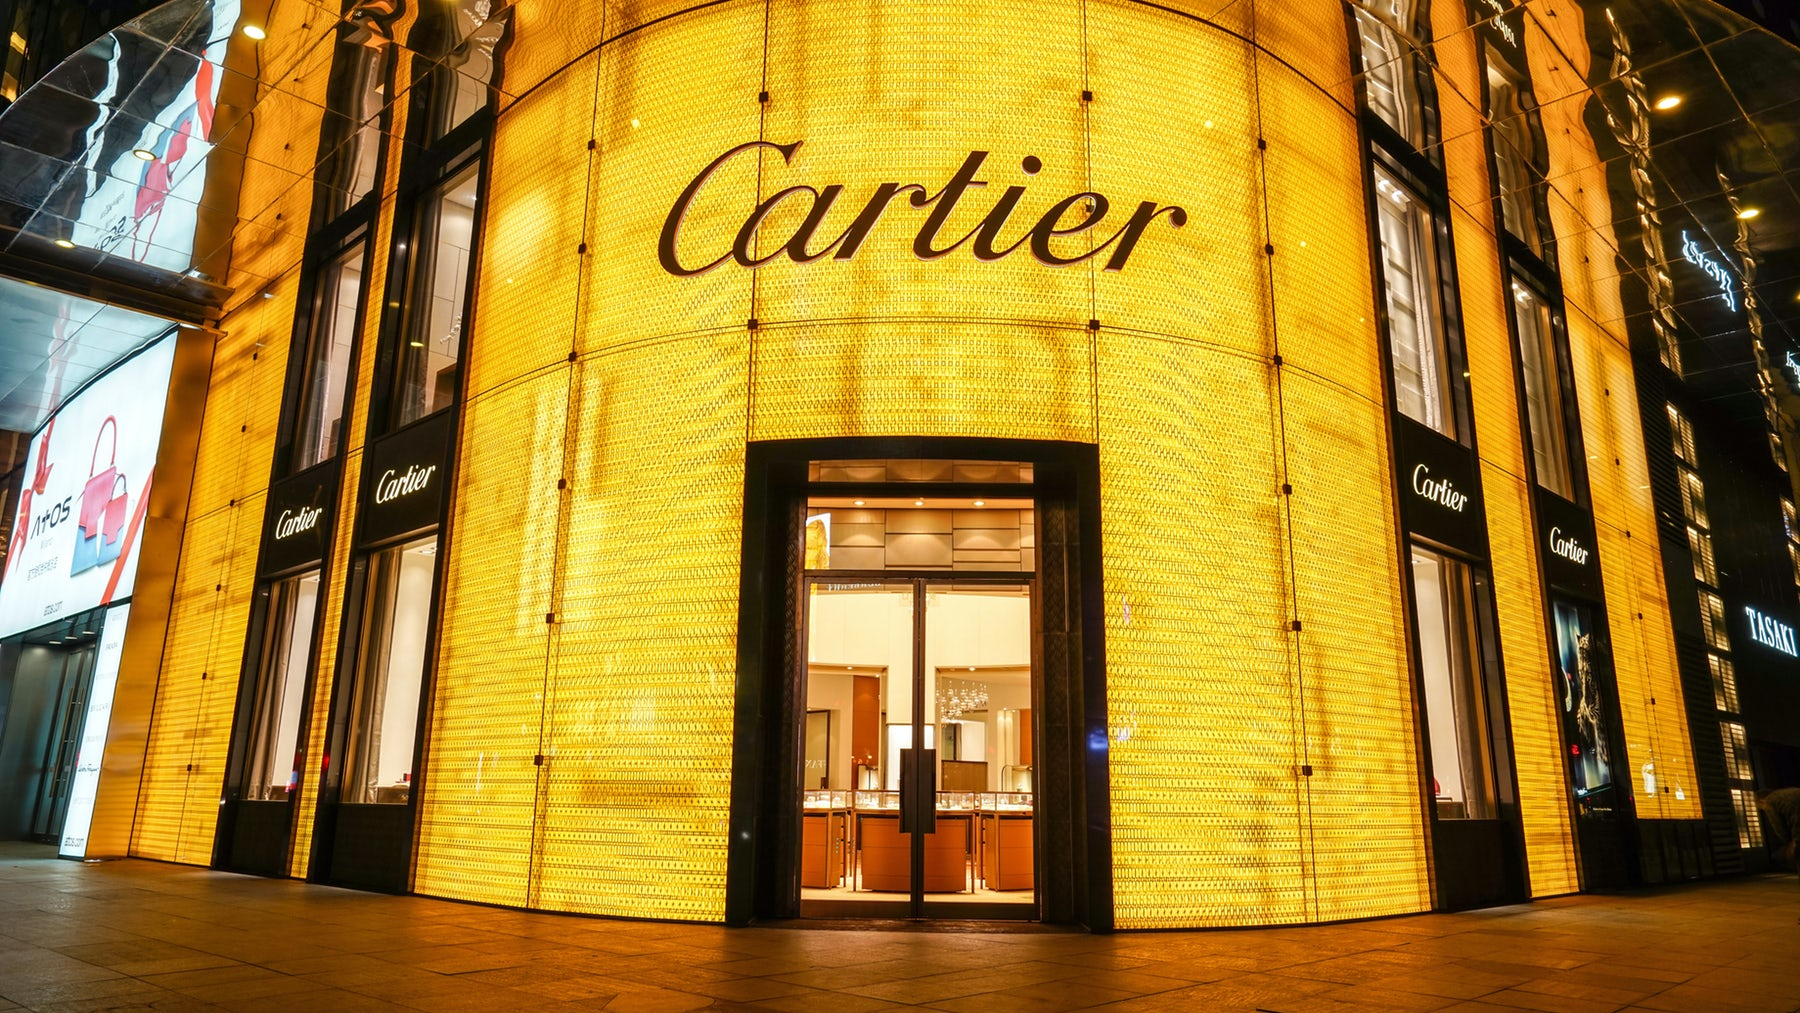 Cartier store in Shanghai, China | Source: Courtesy